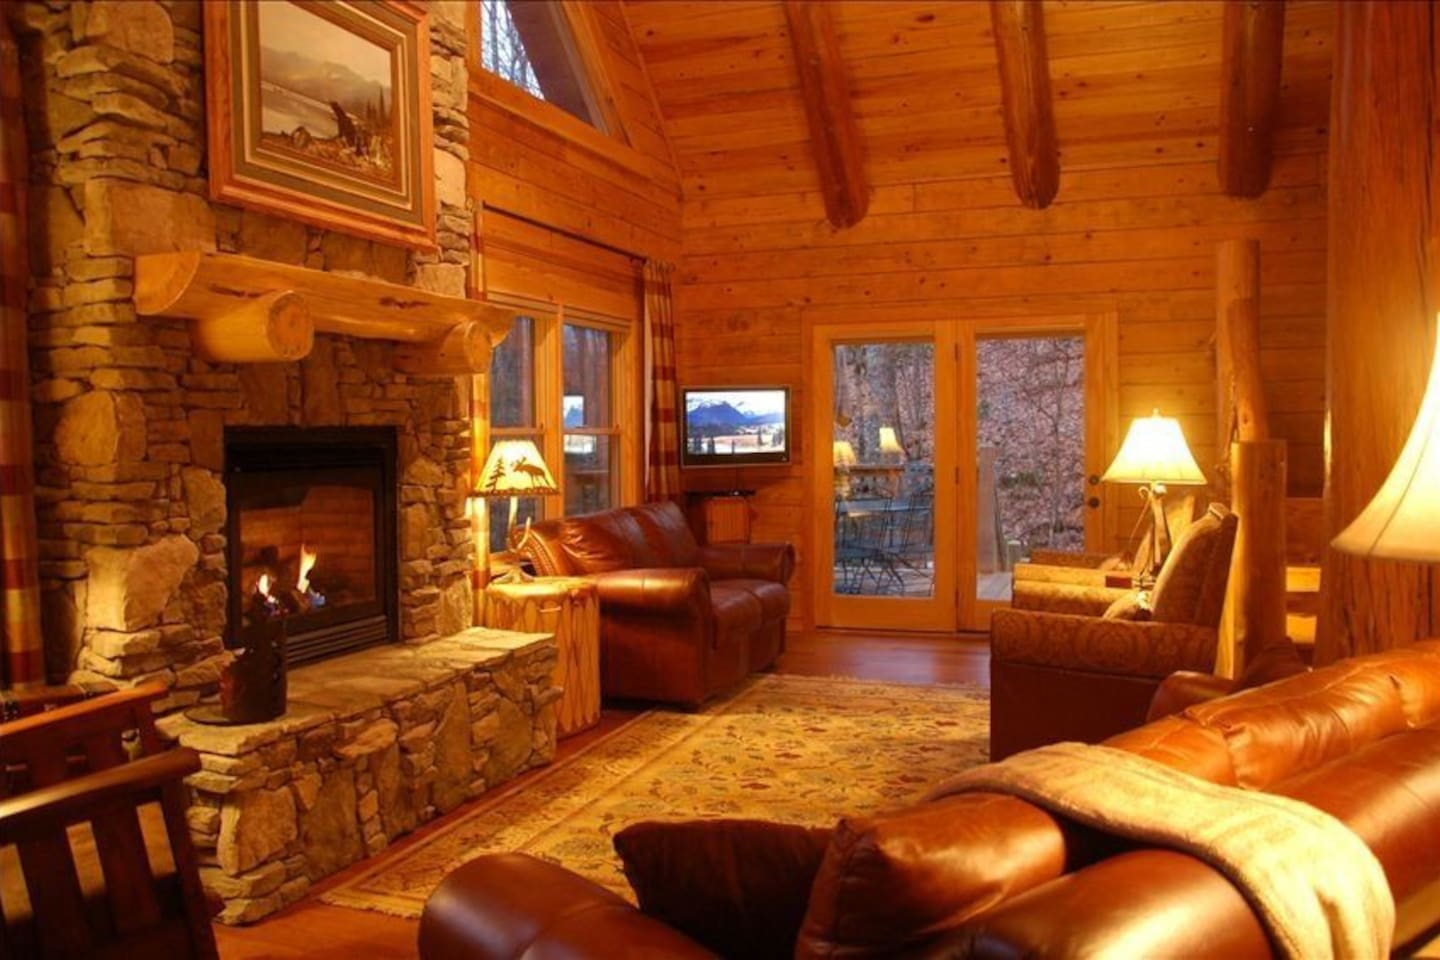 The Great Room with 24-foot, vaulted ceilings, log beams and stone fireplace.